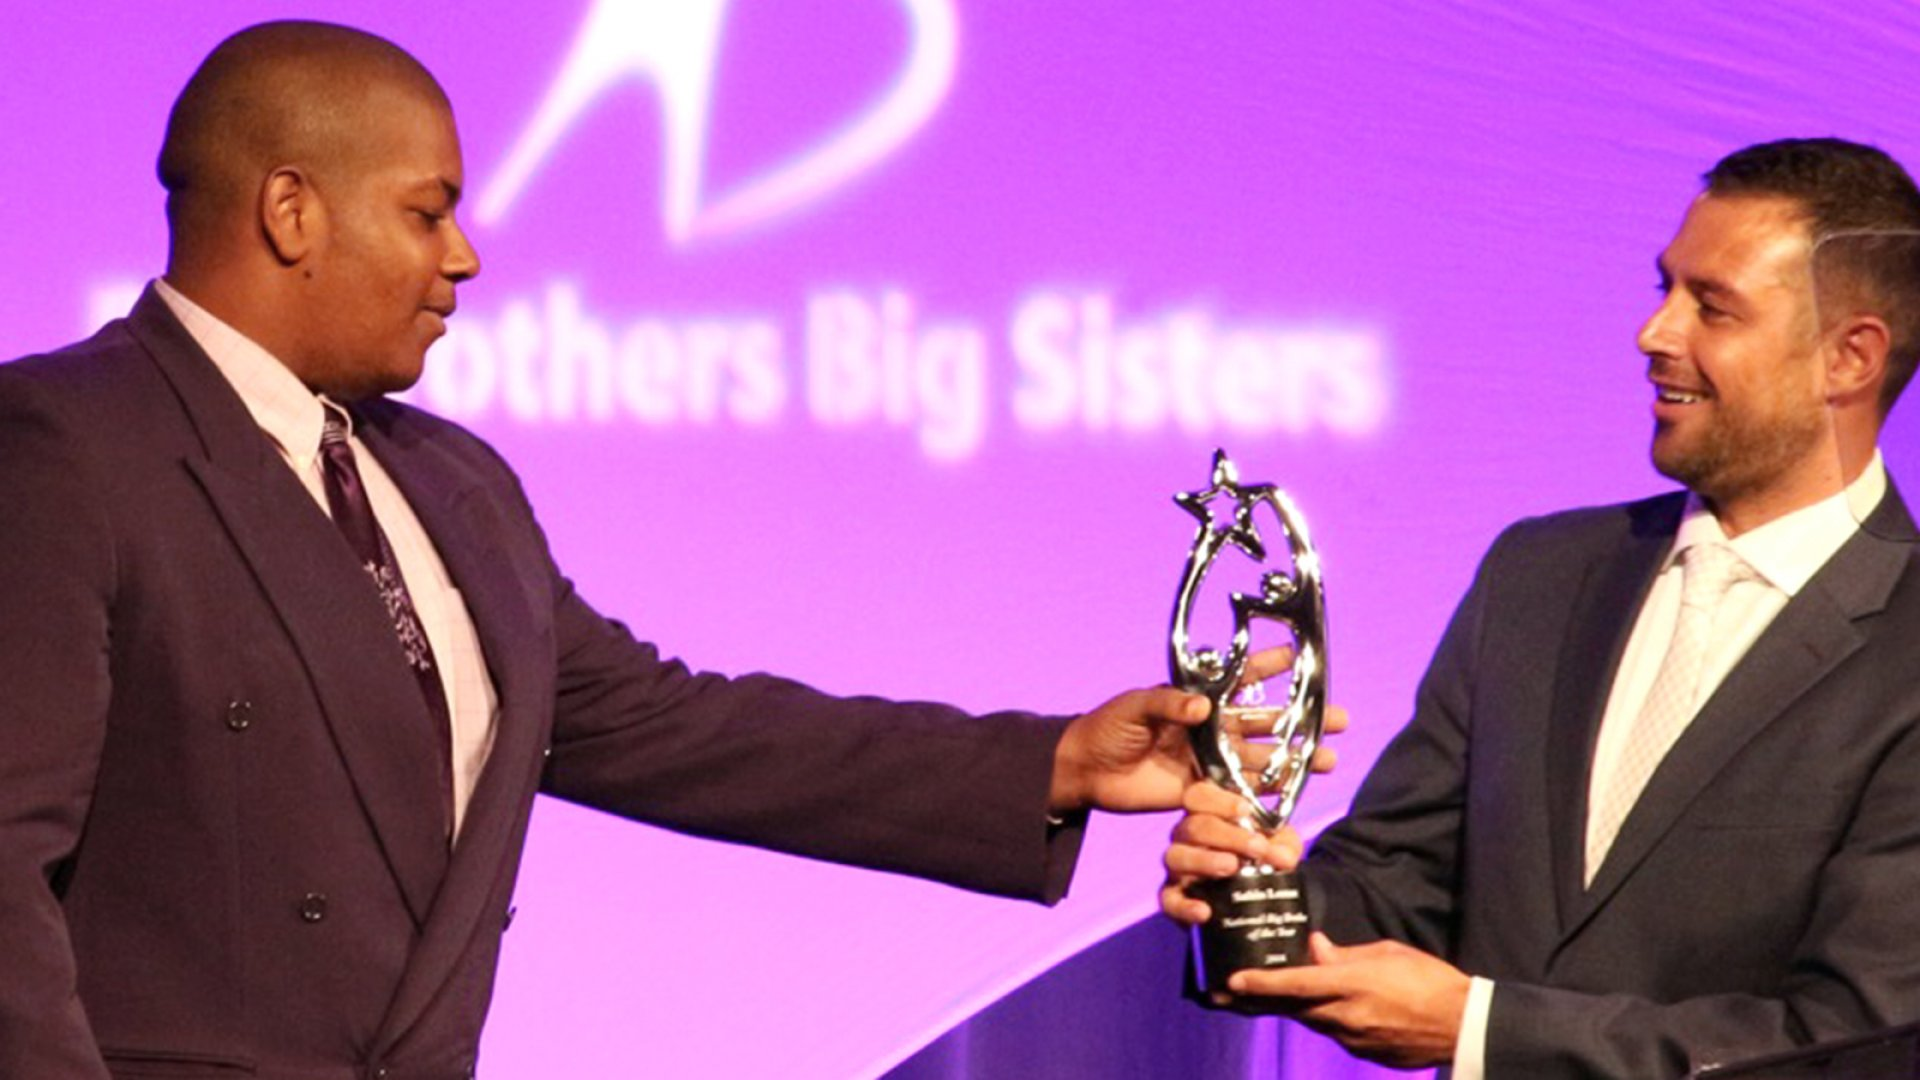 Sabin Lomac (right) receives the National Big Brother of the Year award from his little brother Lawrence Pittman at the Big Brothers Big Sisters of America National Conference Gala in Orlando, Fl. on June 29th. CREDIT: Courtesy of Big Brothers Big Sisters of America